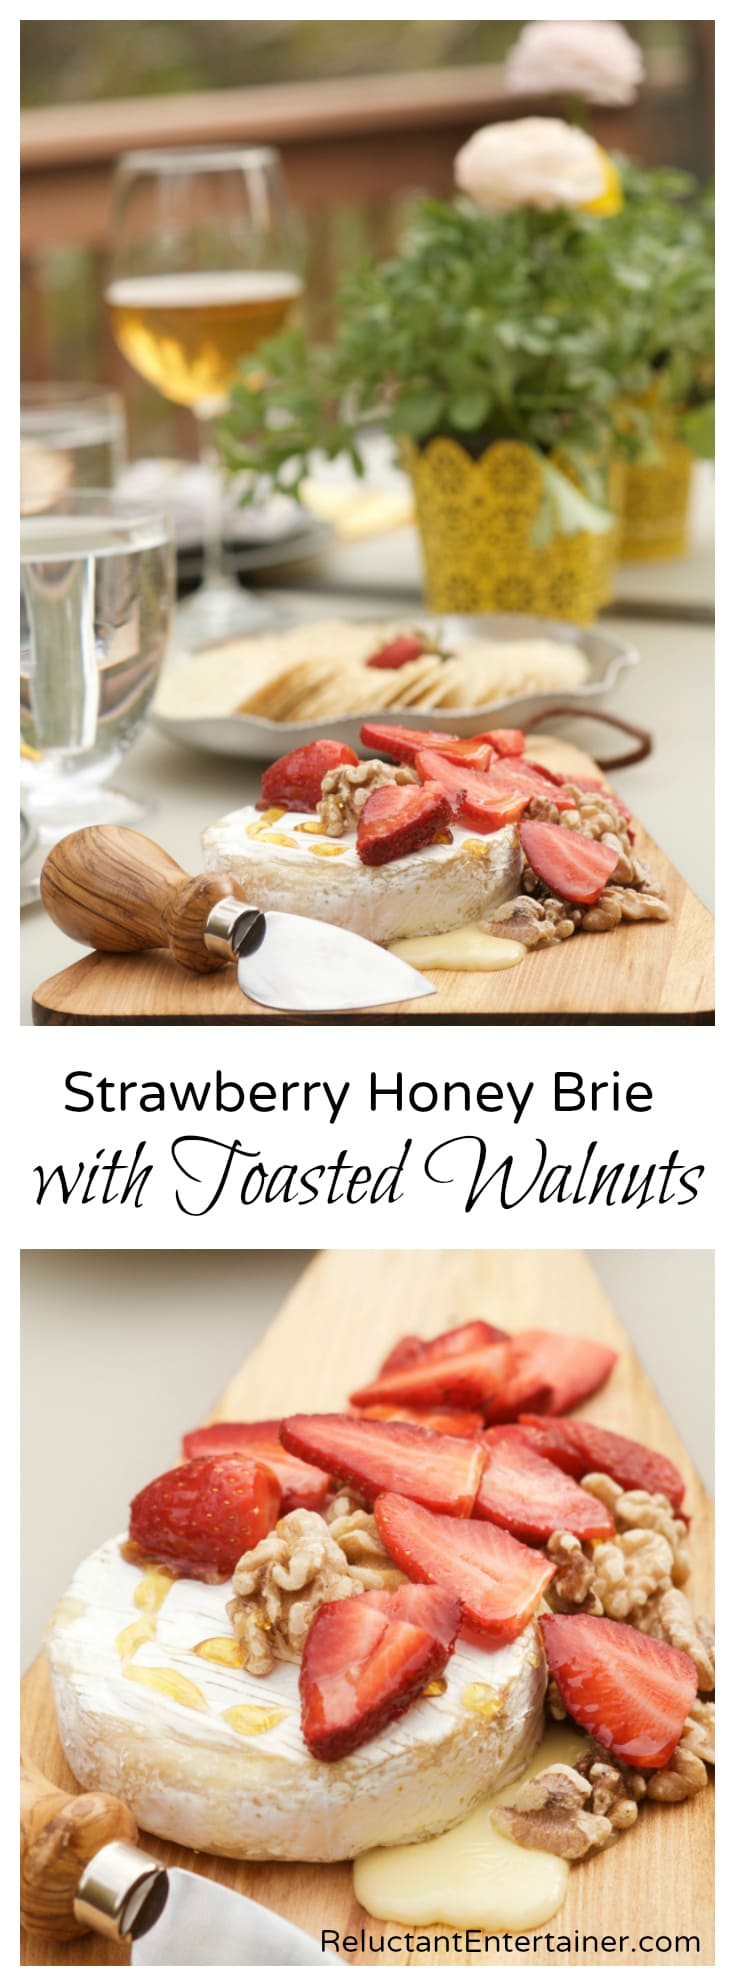 Strawberry Honey Brie with Toasted Walnuts